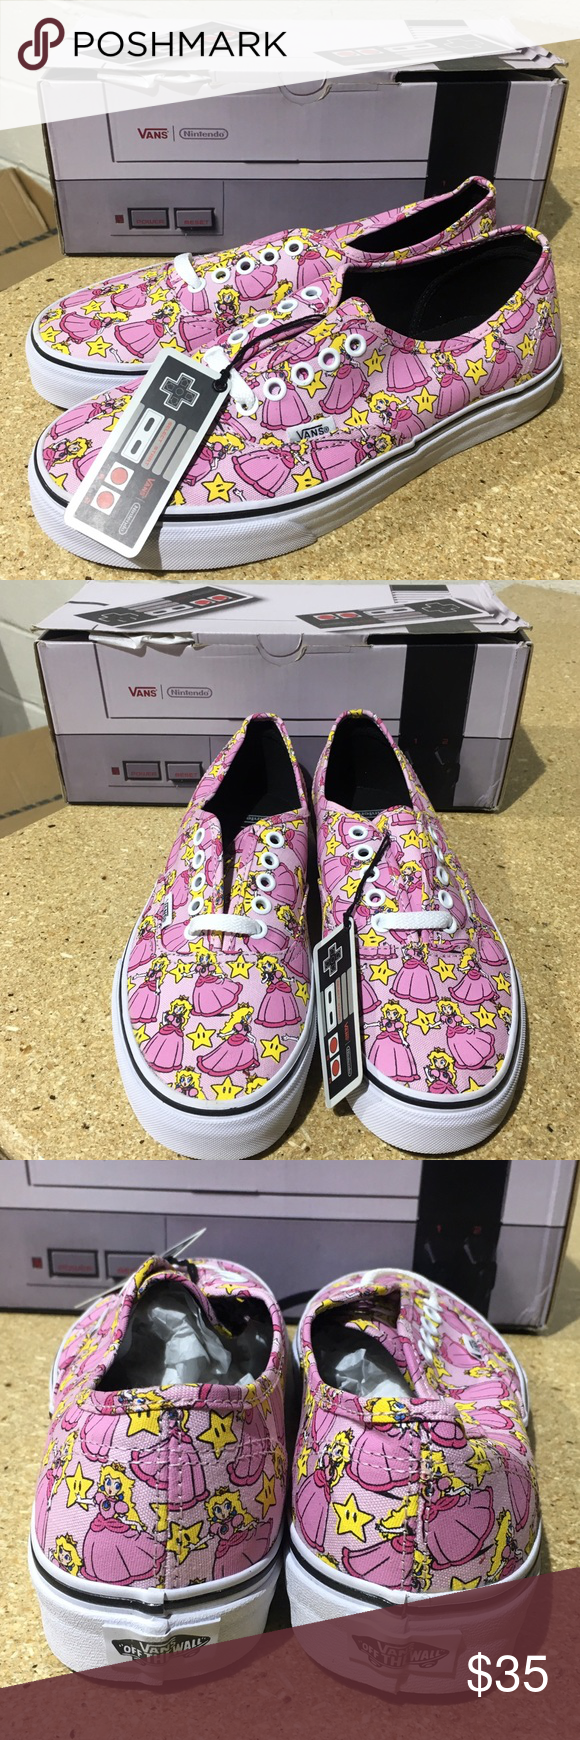 efb0d2b6c7 Vans X Nintendo Princess Peach Authentic s These limited Edition Vans  collaborating with Nintendo are the perfect collectors item that you can  even wear ...